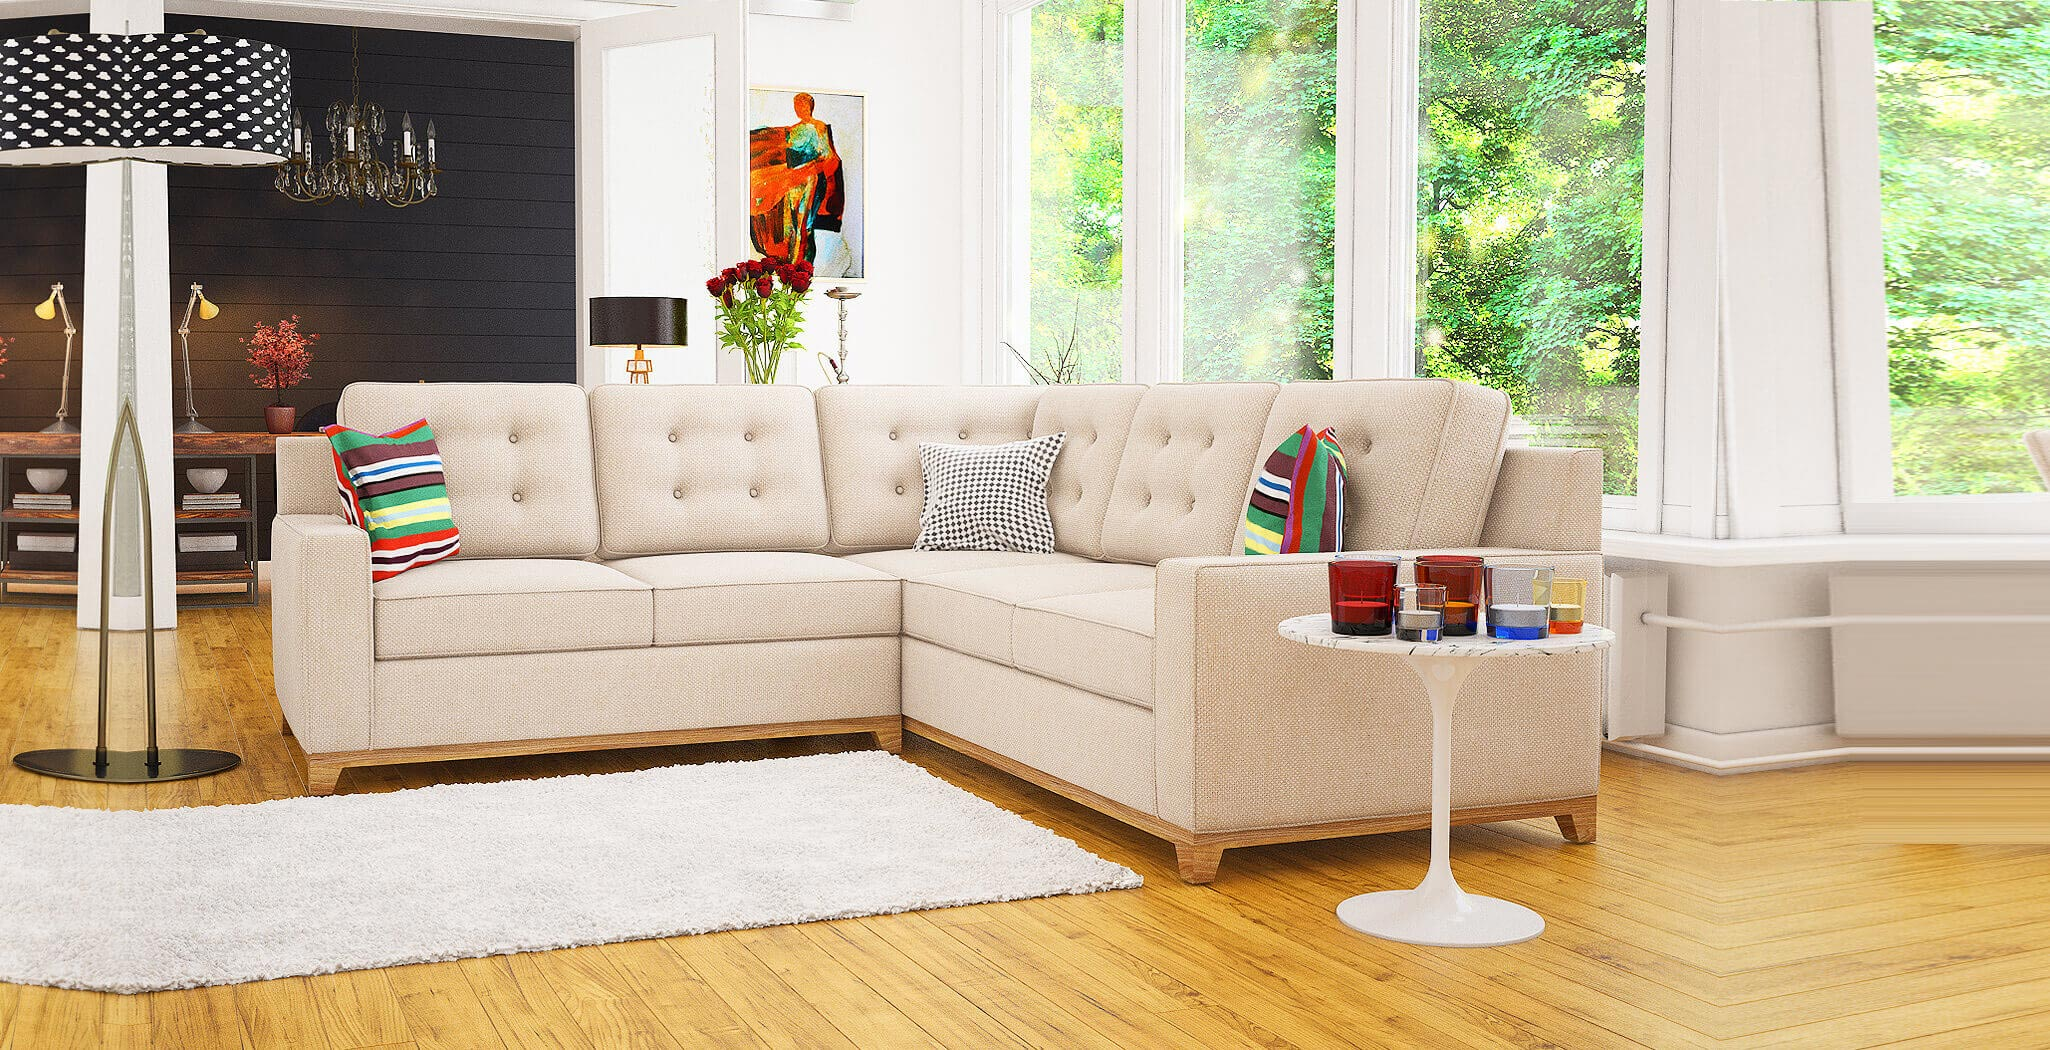 alexandria sectional furniture gallery 1